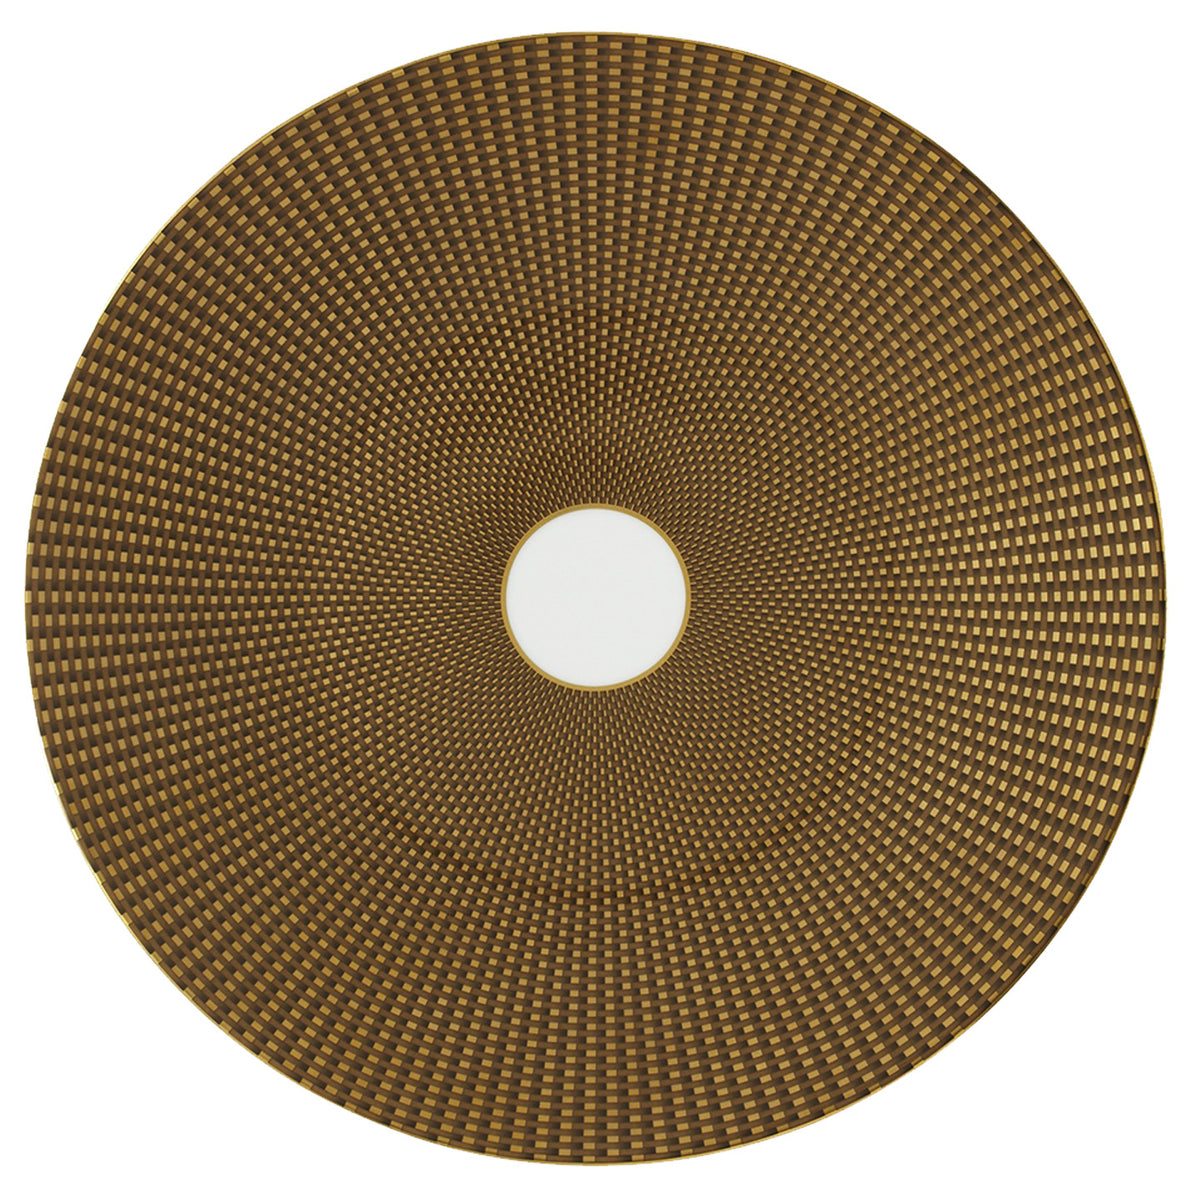 Tresor Brown Porcelain Charger Plate